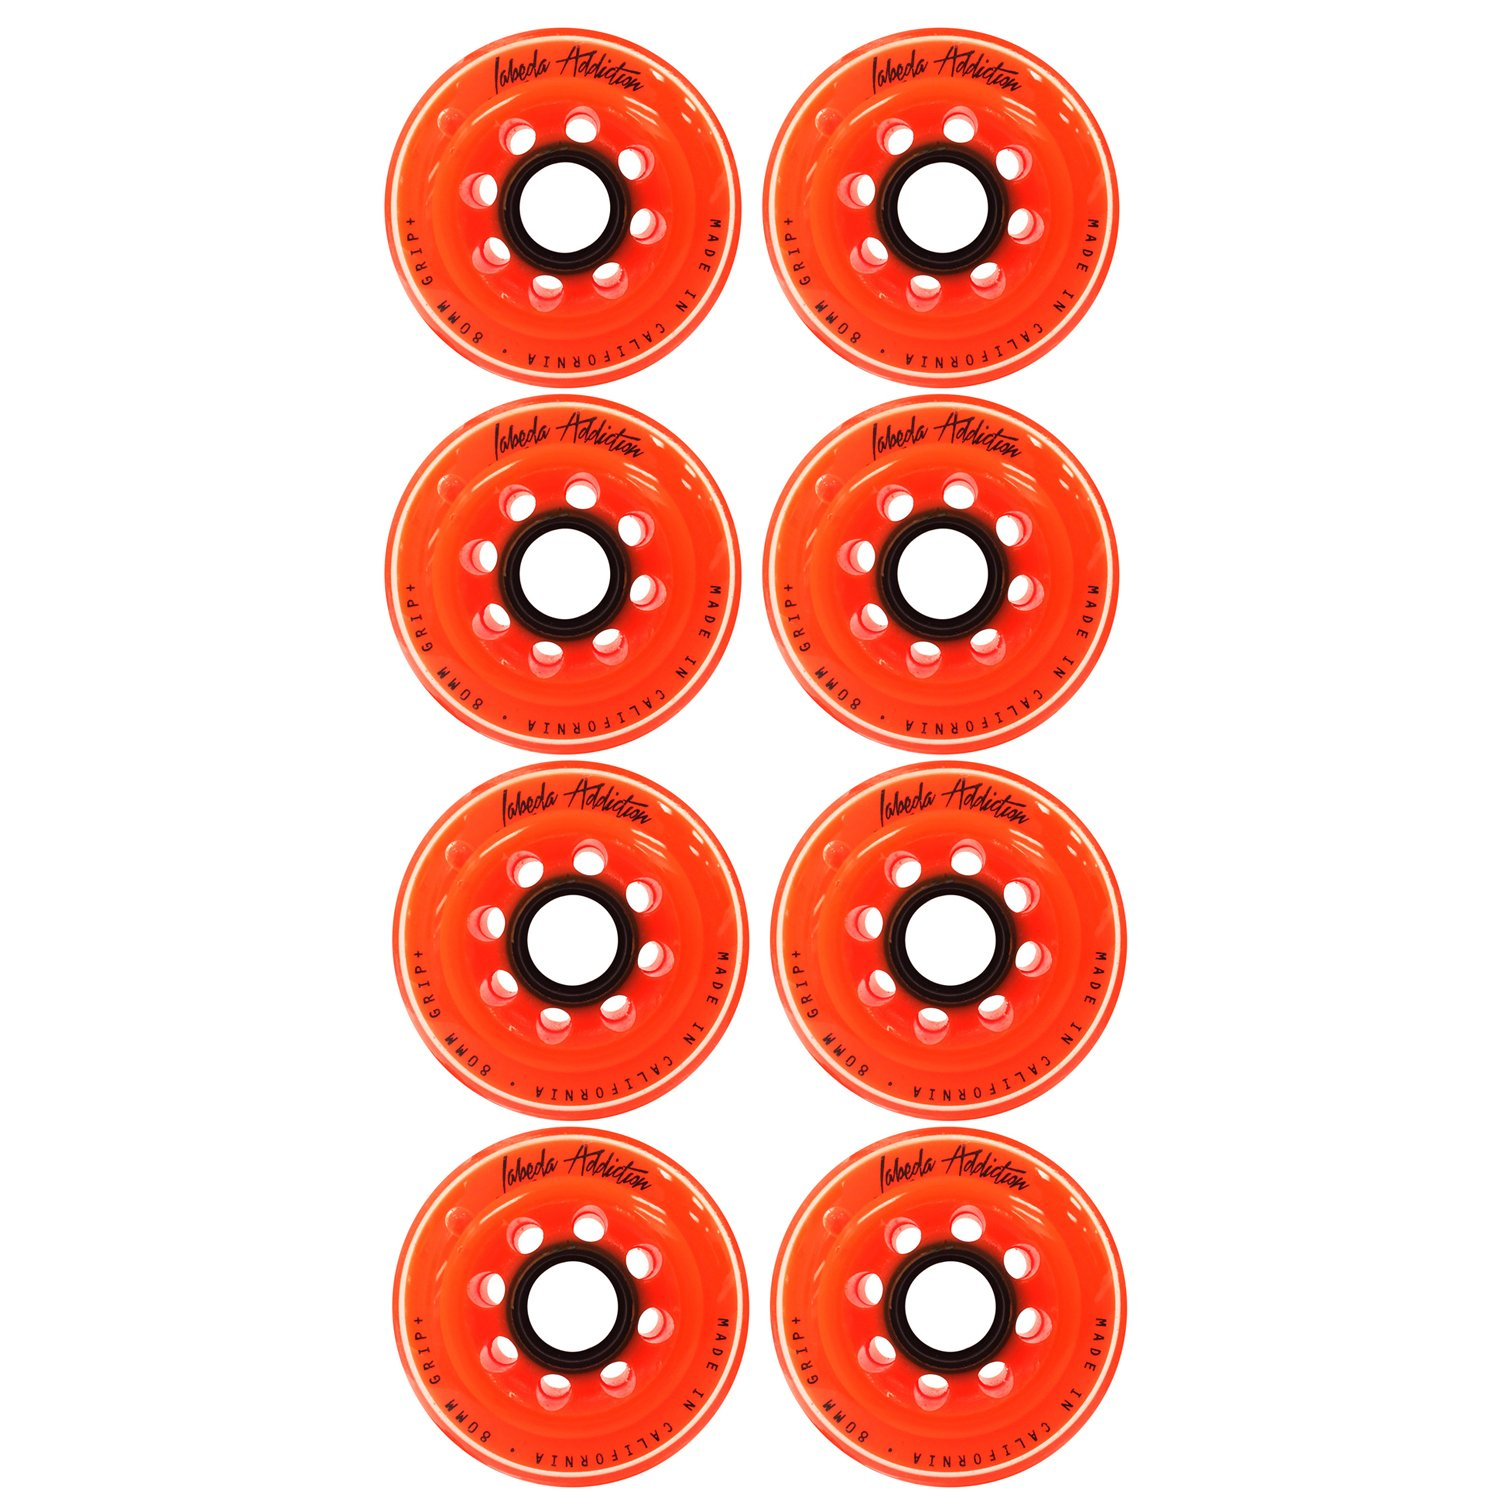 Labeda Inline Roller Hockey Skate Wheels Addiction Orange 76mm SET OF 8 by Labeda